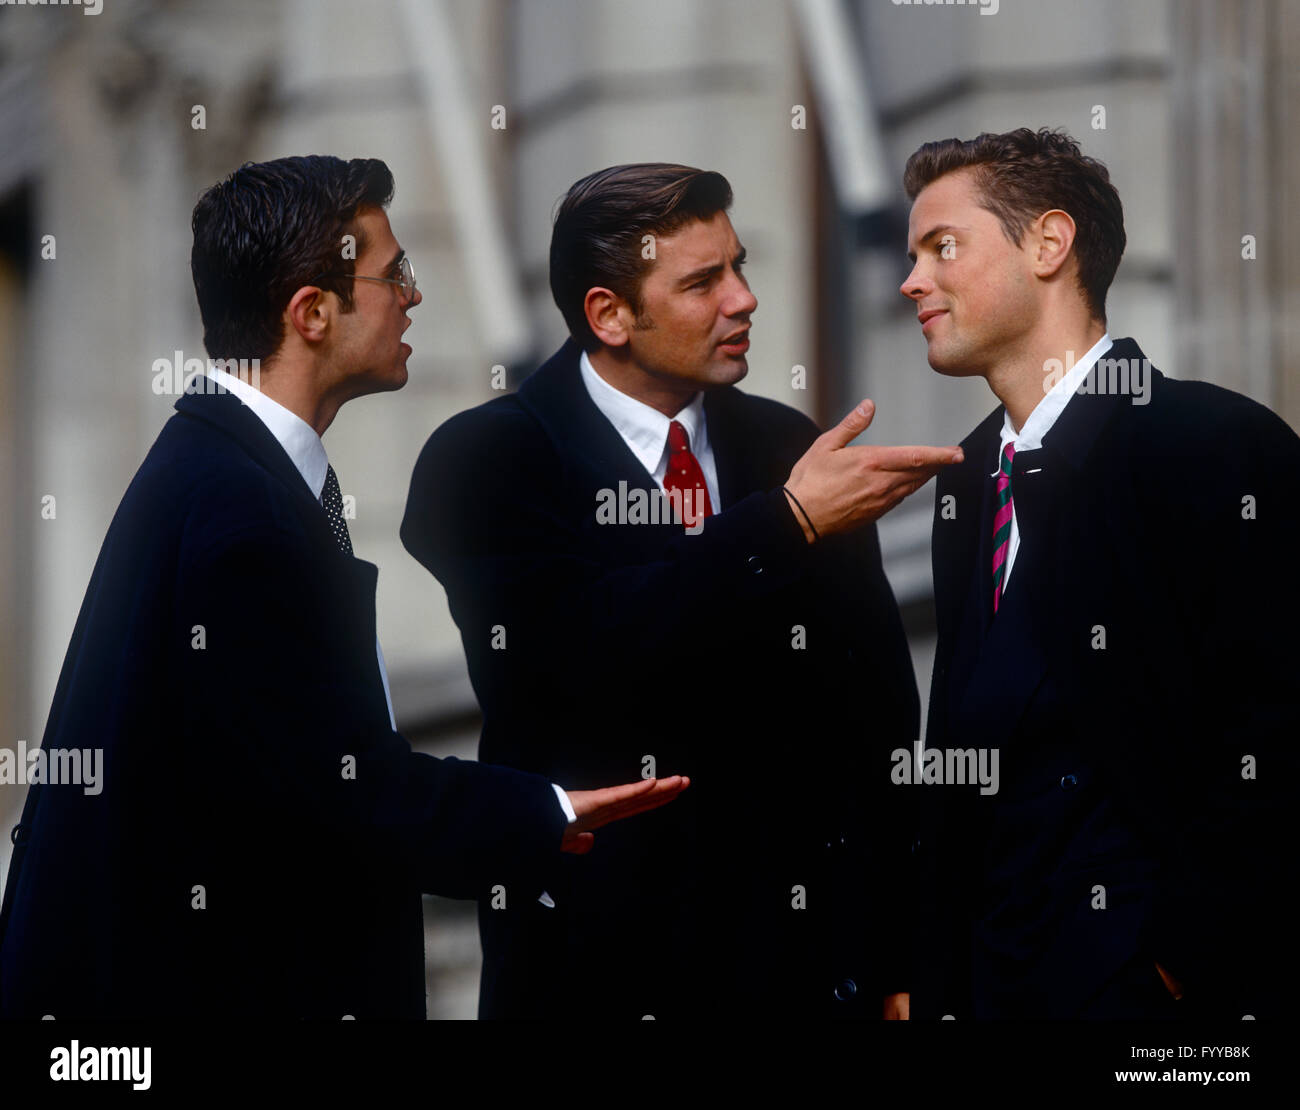 Three work men in smart shirts having a discussion, outside. - Stock Image